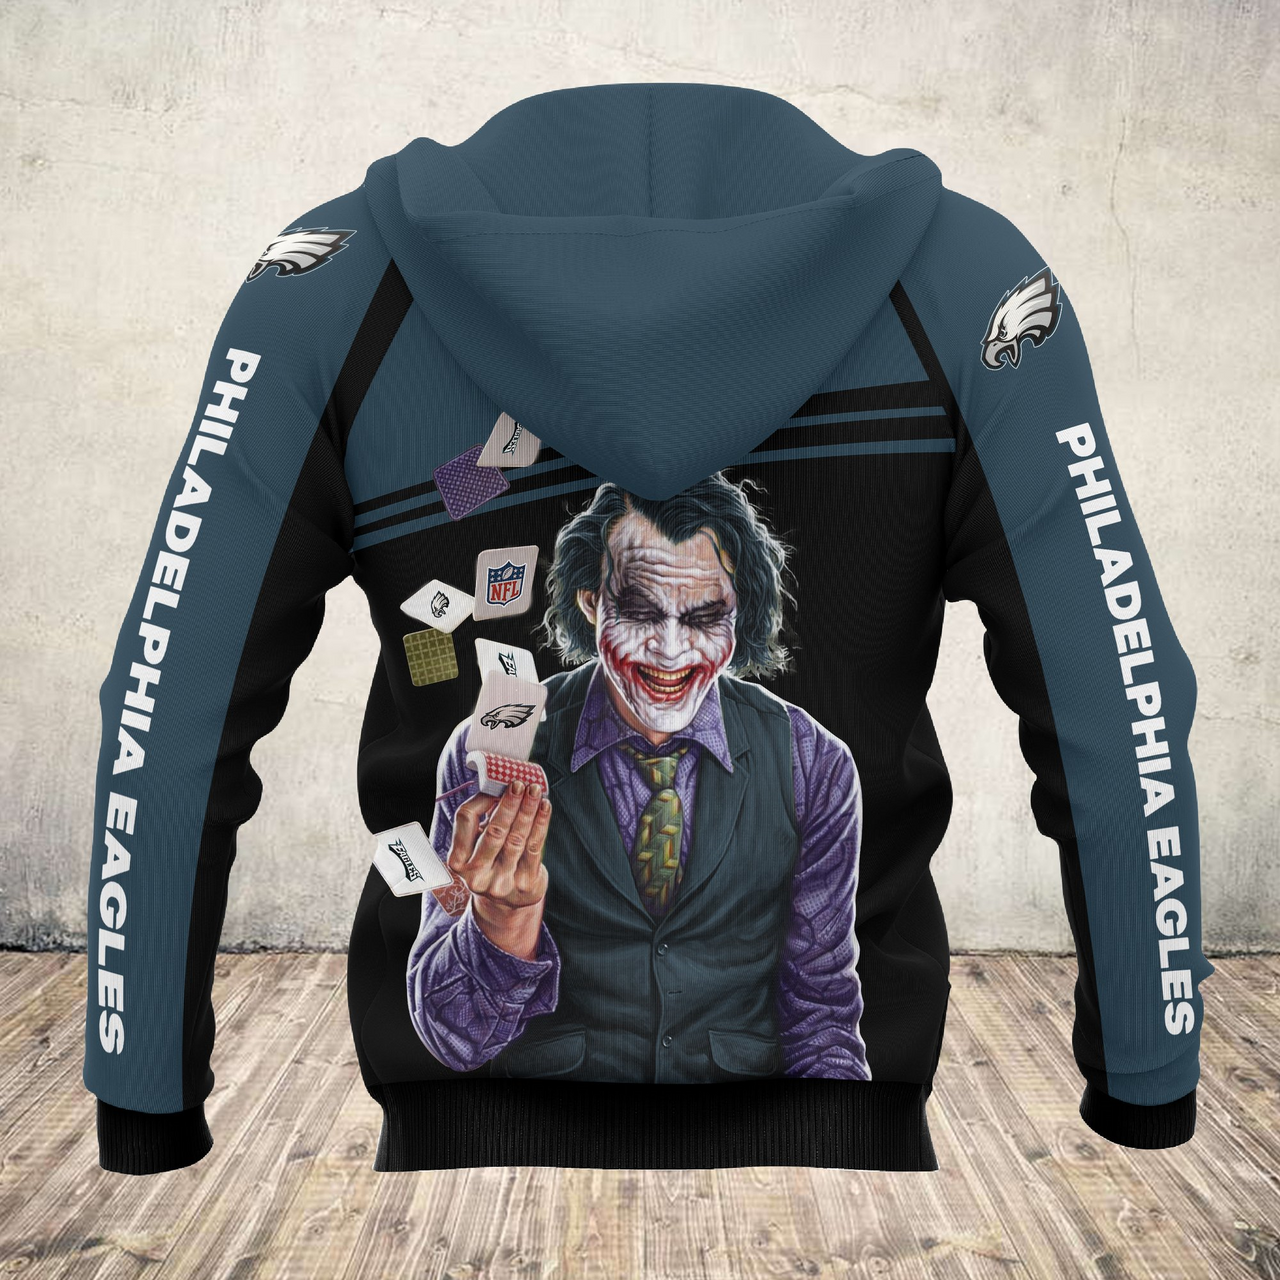 **(OFFICIAL-N.F.L.PHILADELPHIA-EAGLES-ZIPPERED-HOODIES & THE-JOKER-CLASSIC-MOVIE-CHARACTER/OFFICIAL-EAGLES-LOGOS & OFFICIAL-EAGLES-CLASSIC-TEAM-COLORS/NICE-3D-DETAILED-GRAPHIC-PRINTED-DOUBLE-SIDED-DESIGN/WARM-PREMIUM-N.FL.EAGLES-TEAM-HOODIES)**